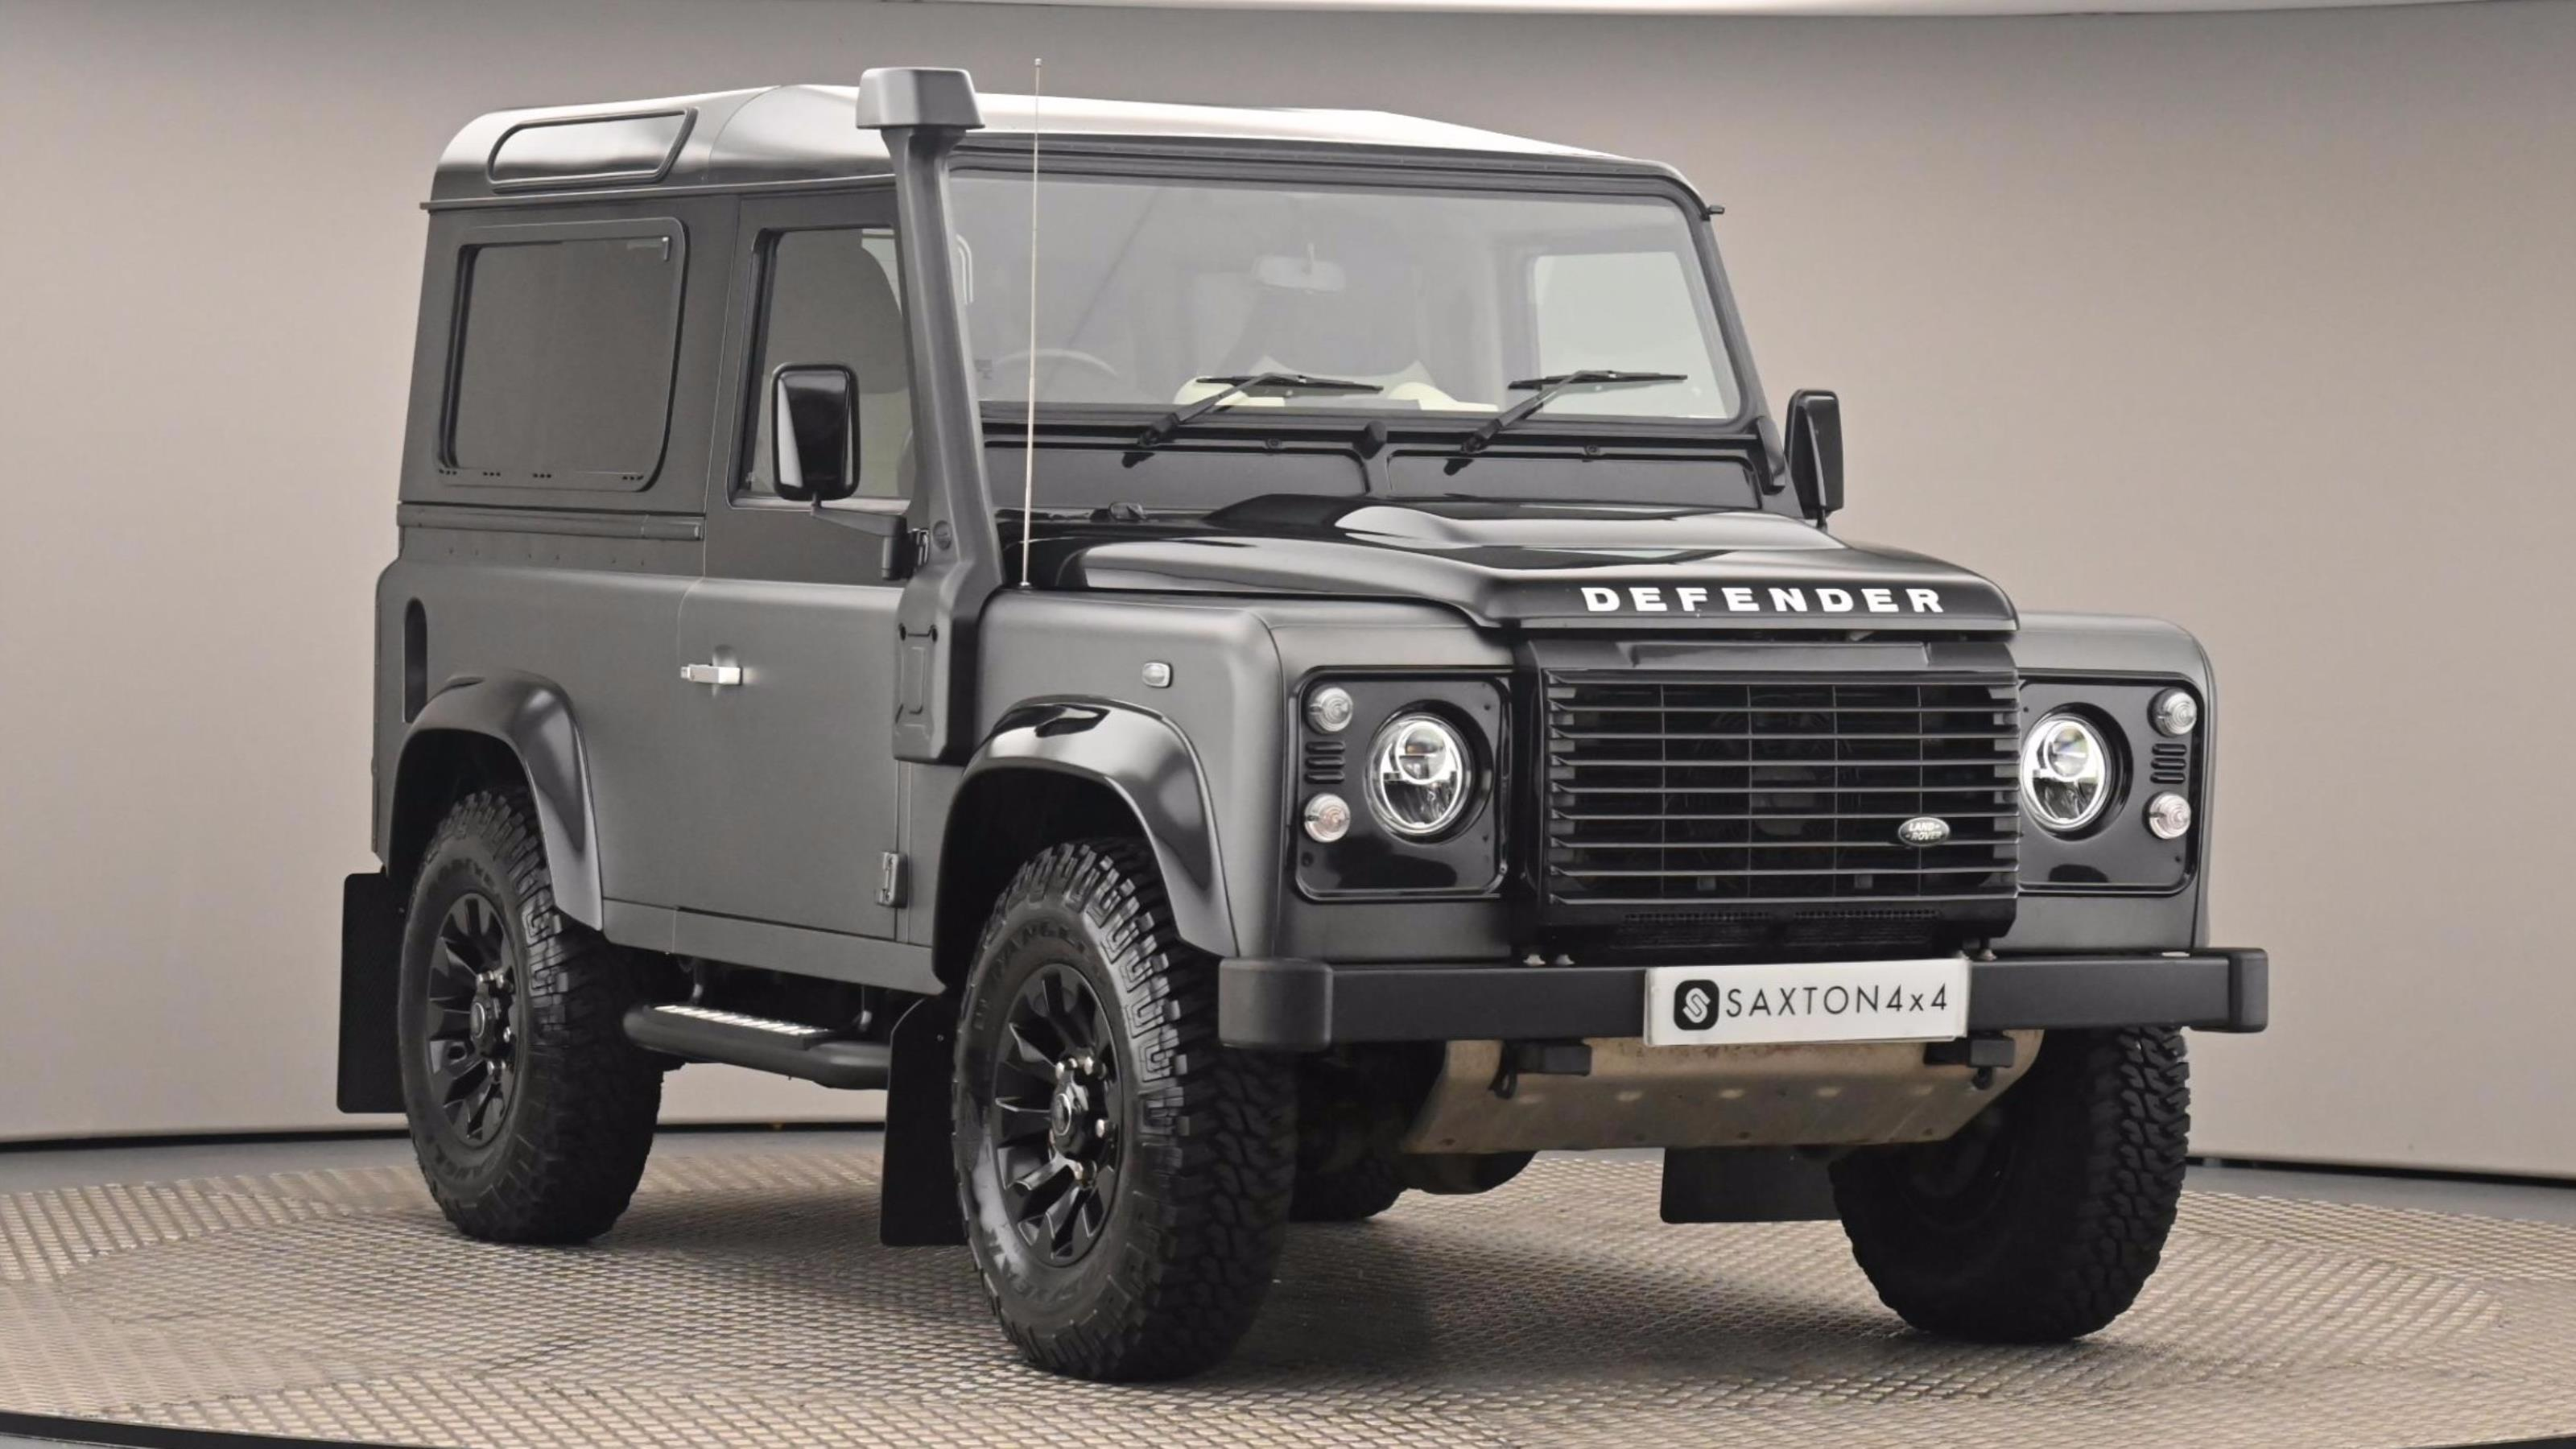 Used 2016 LAND ROVER DEFENDER  90 SWB  SPECIAL EDITIONS Autobiography Station Wagon TDCi [2.2] 150 BLACK at Saxton4x4